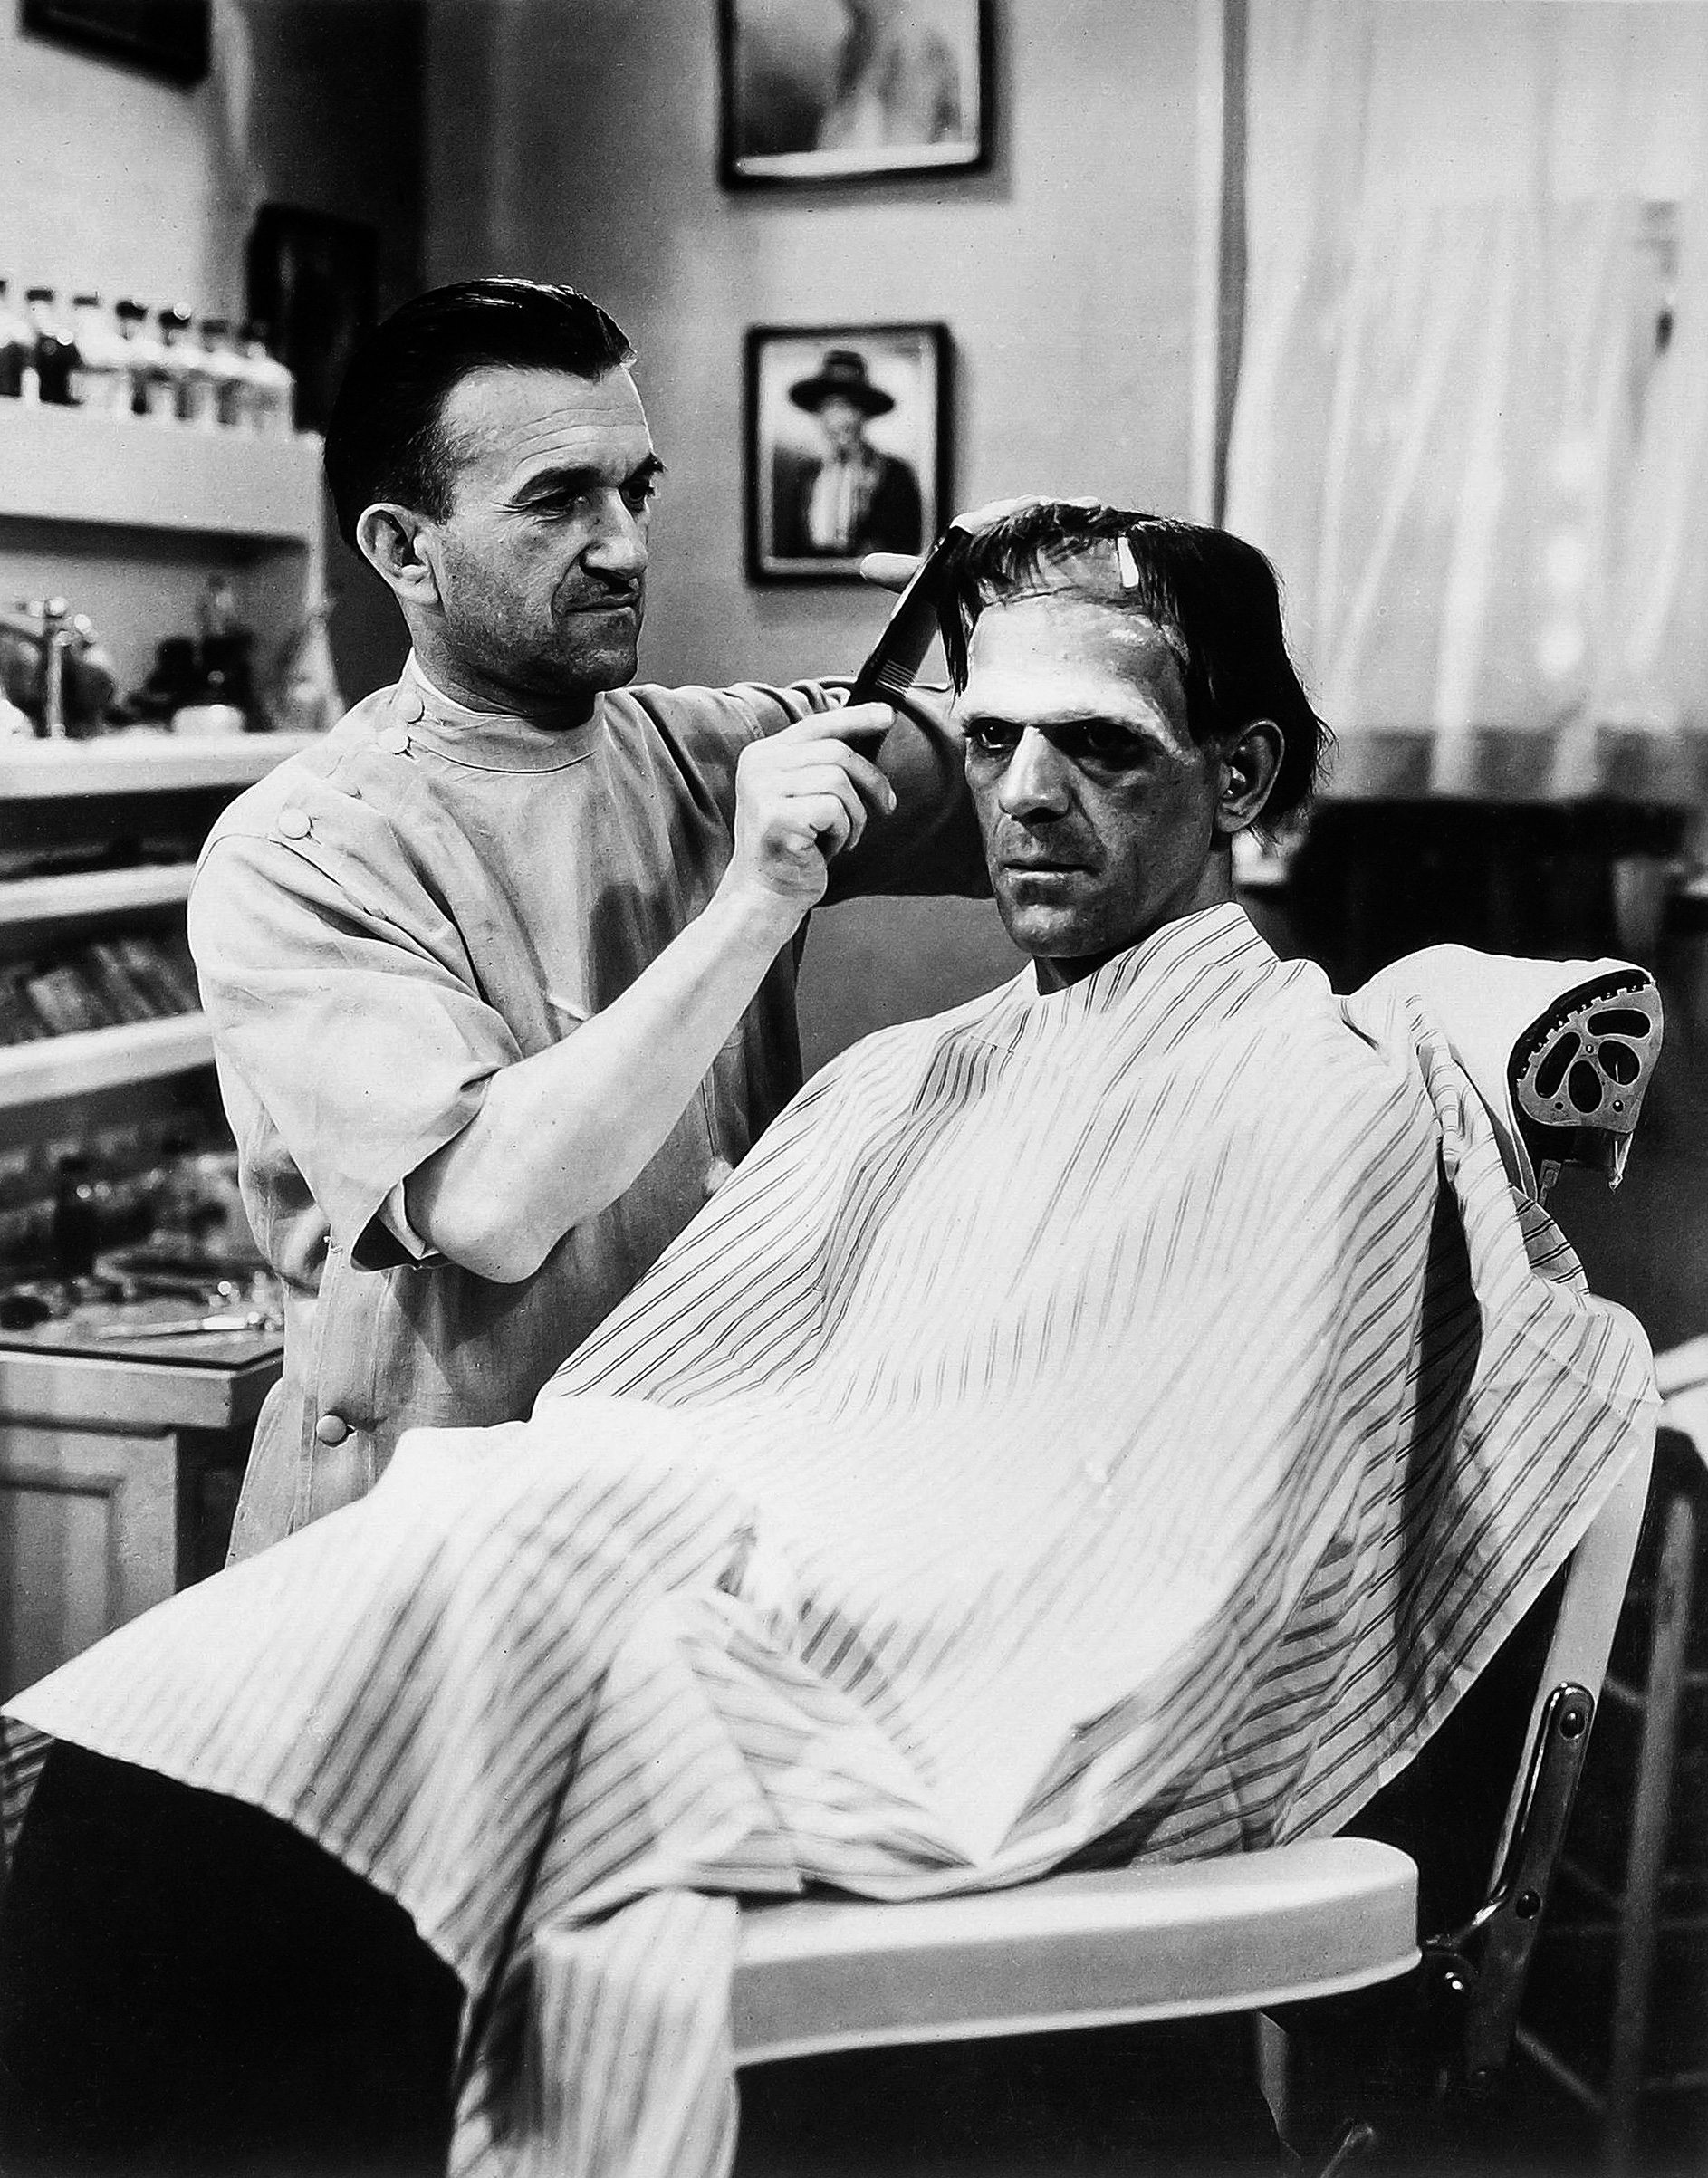 Makeup artist Jack Pierce combs the Monster's wig: according to Boris Karloff, 'it took from four to six hours a day to make me up . . .'  (1931).